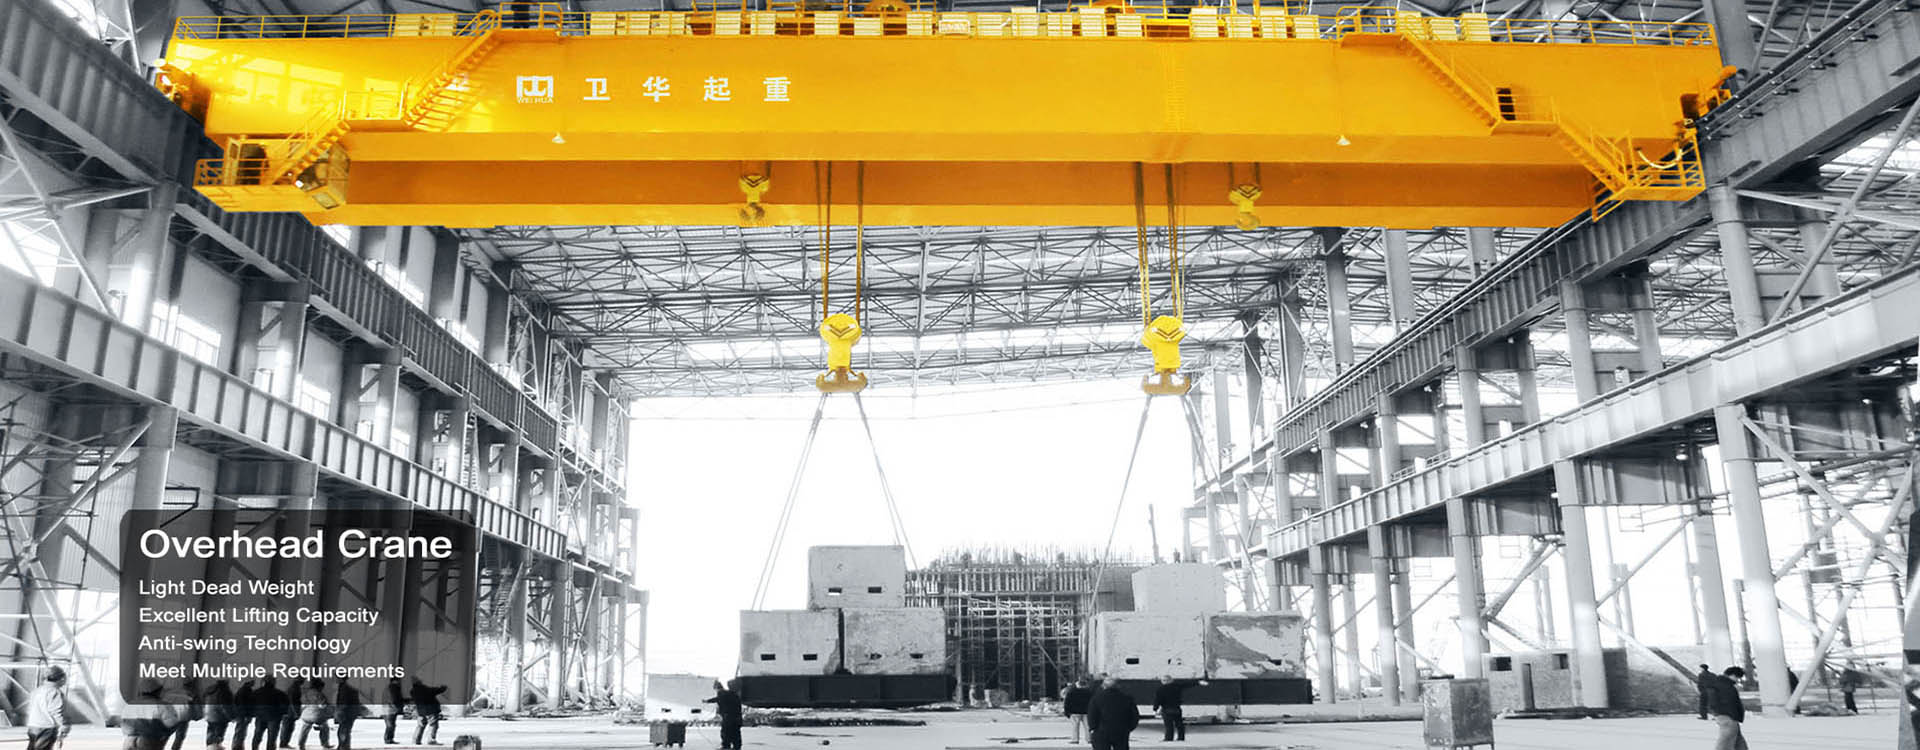 Weihua Group Overhead Crane